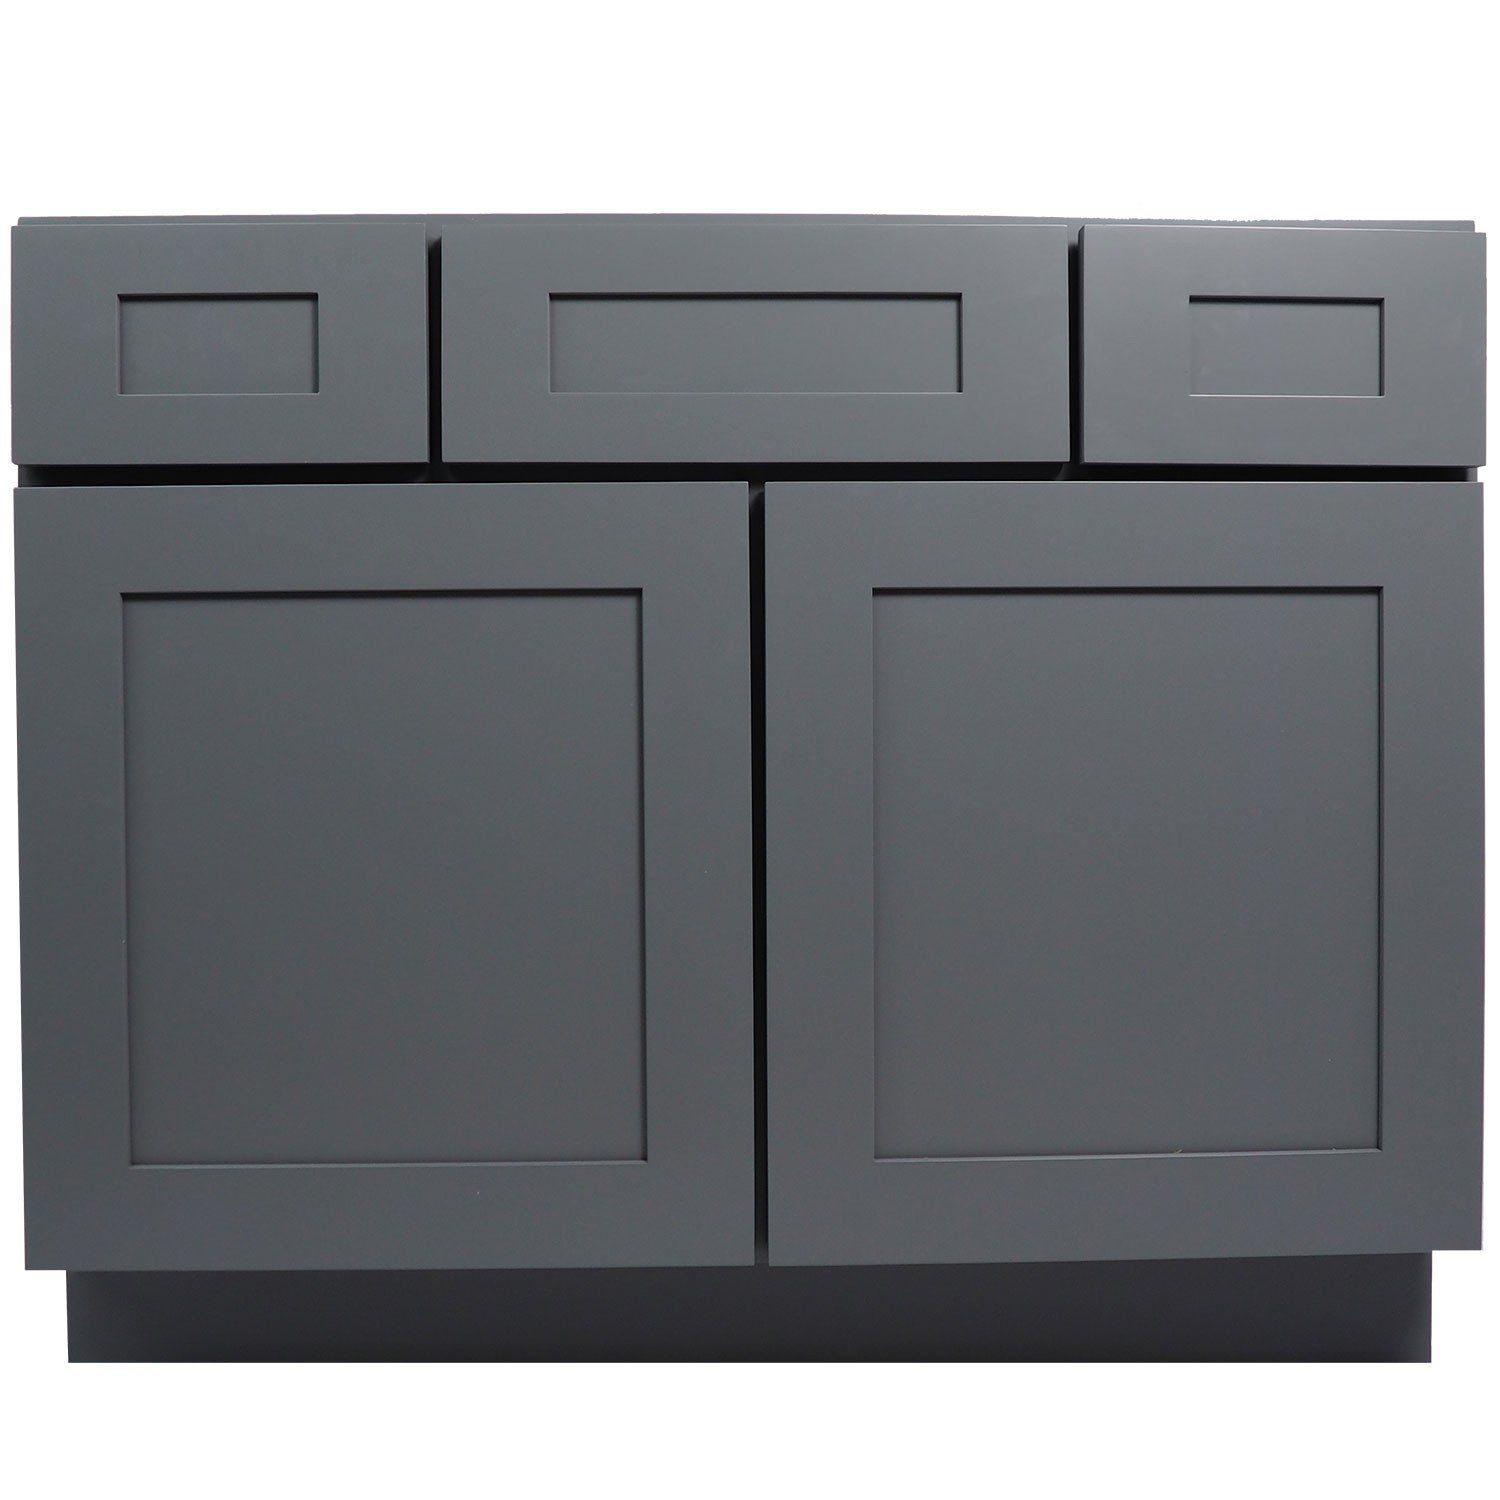 Sets bathroom vanity ari kitchen second - 42 Inch Bathroom Vanity Cabinet In Solid Wood Shaker Gray With Soft Close Drawers Are Doors